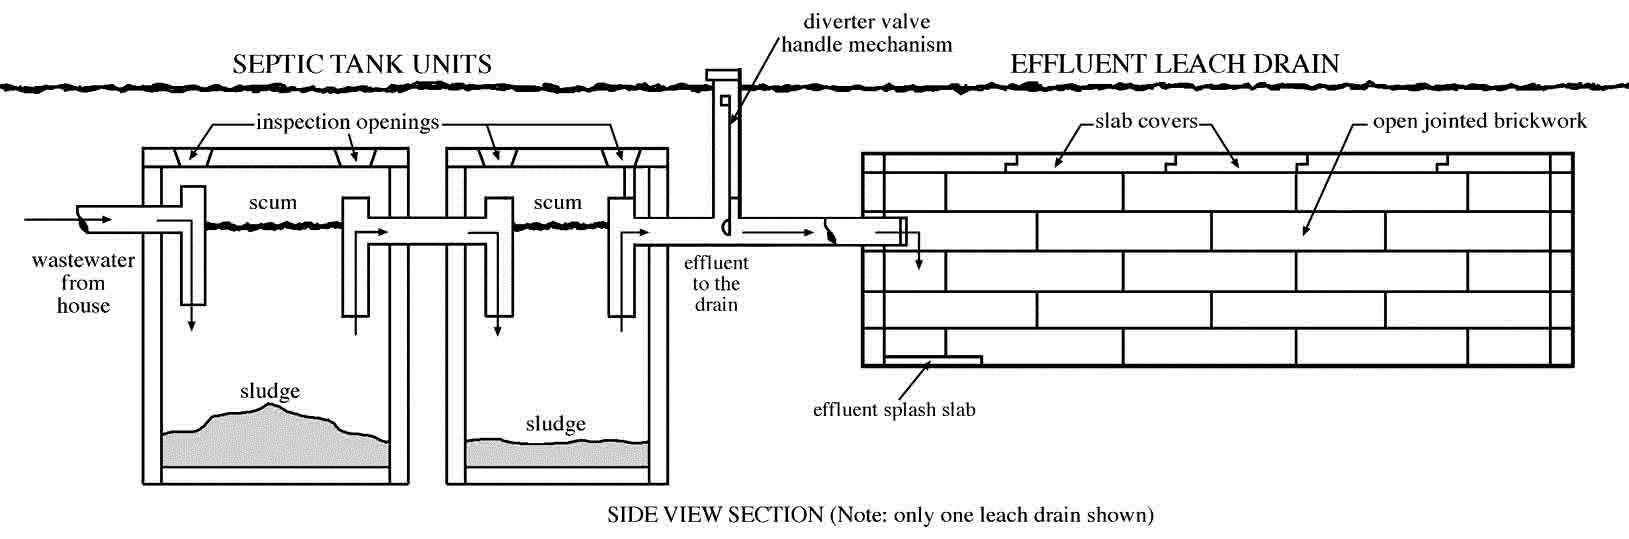 septic clogged pipes diagram water filters in africa diagram septic clogged pipes diagram sludge filter diagram septic 20tank 20unit septic clogged pipes diagramhtml